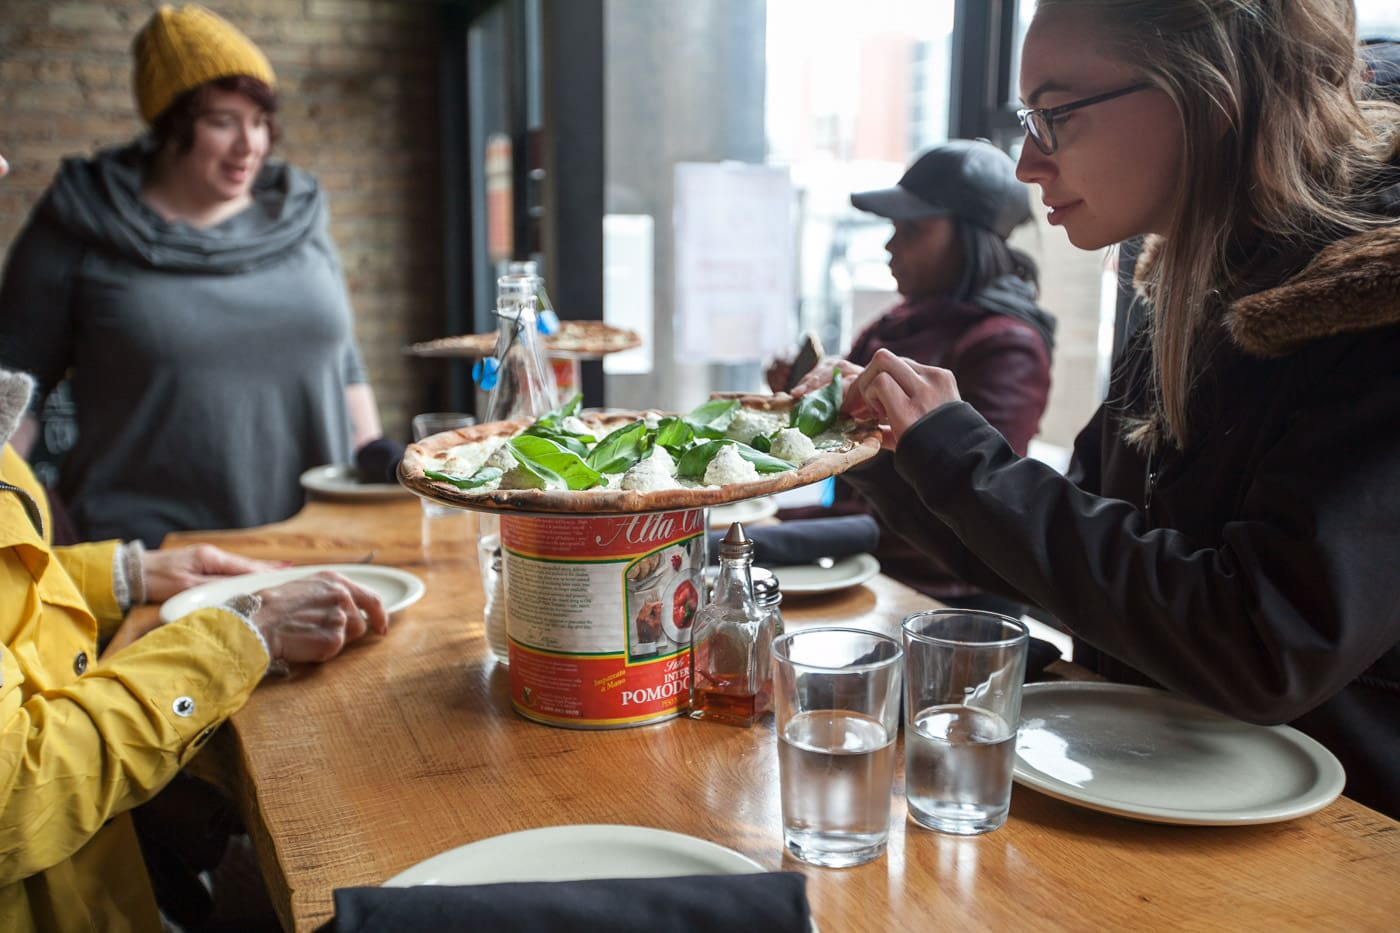 Pizza tour of Chicago with Chicago Pizza Tours - White ​Pizza with mozzarella, ​garlic, ​evoo, ​oregano, ​basil, and whipped ​ricotta at Coalfire Pizza in Chicago